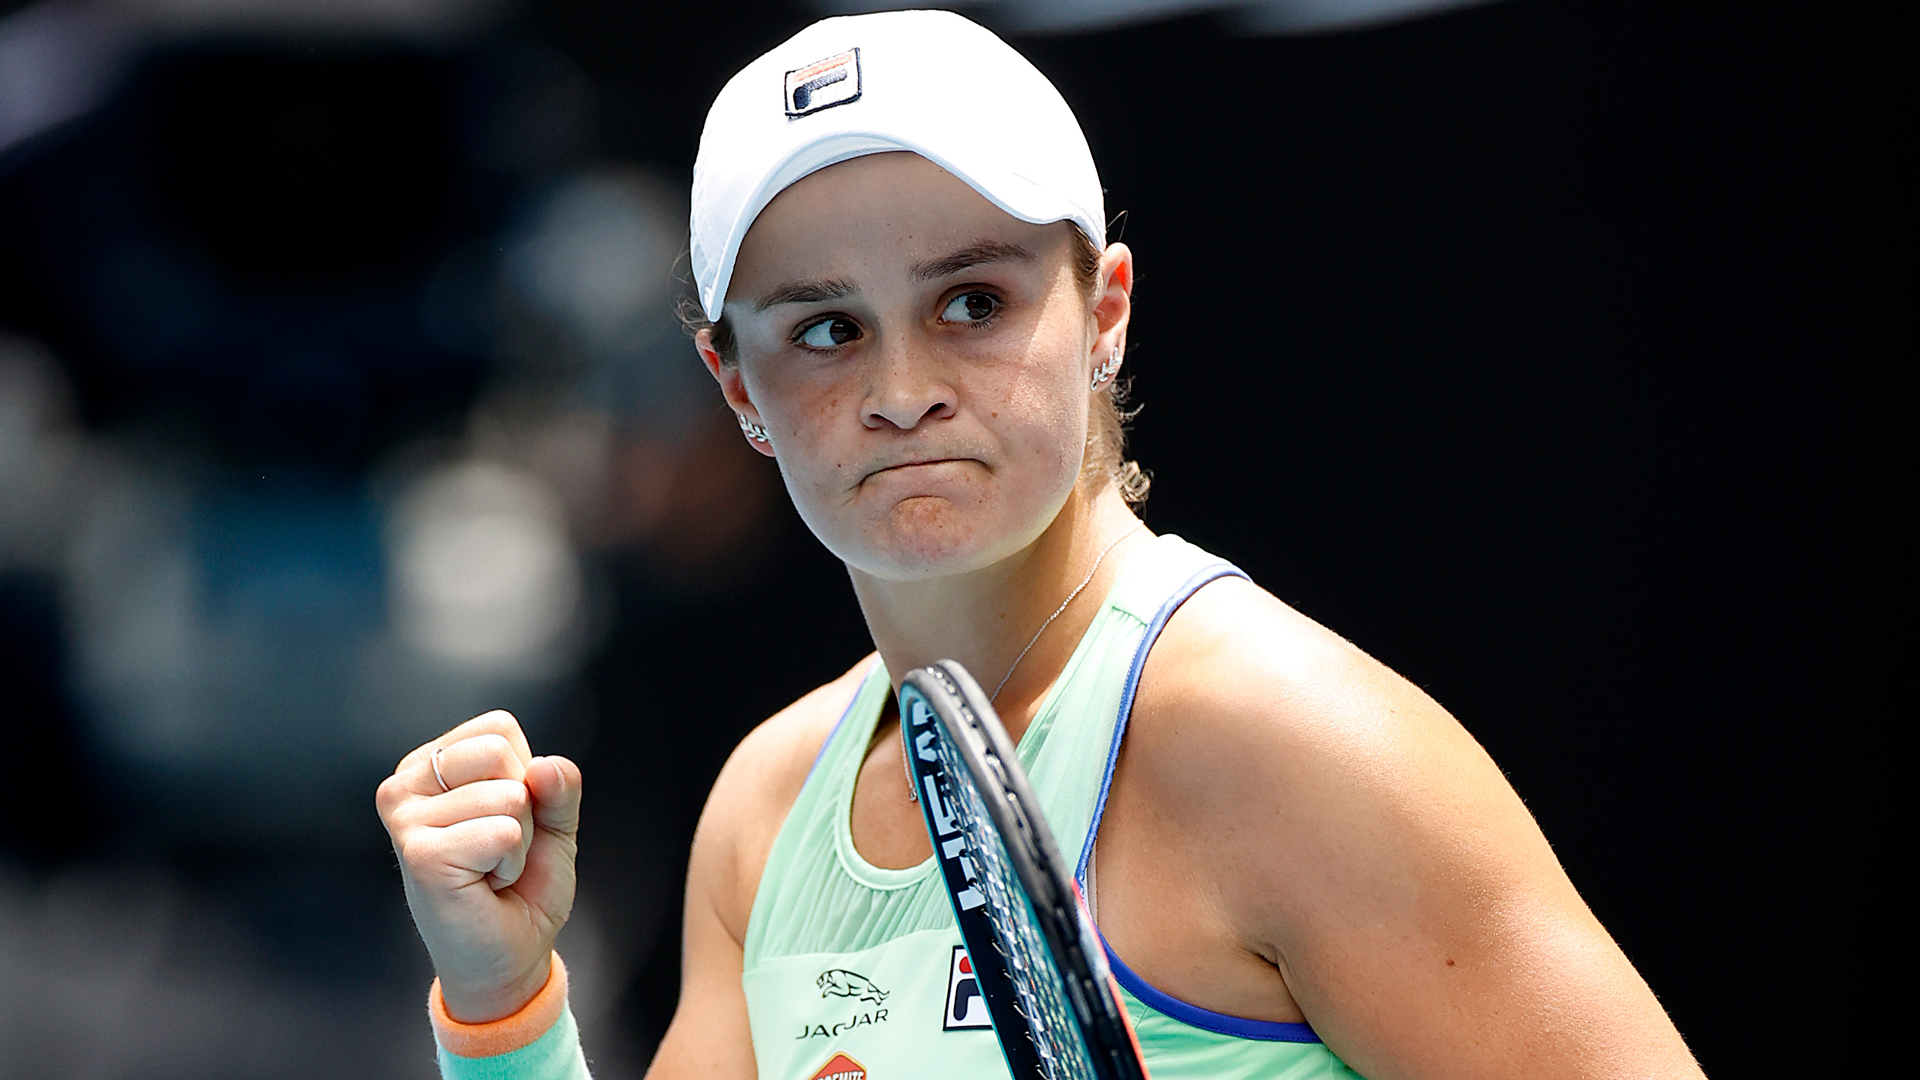 It was a good day for the favourites in the women's draw at the Australian Open, with Ash Barty and Serena Williams winning through.